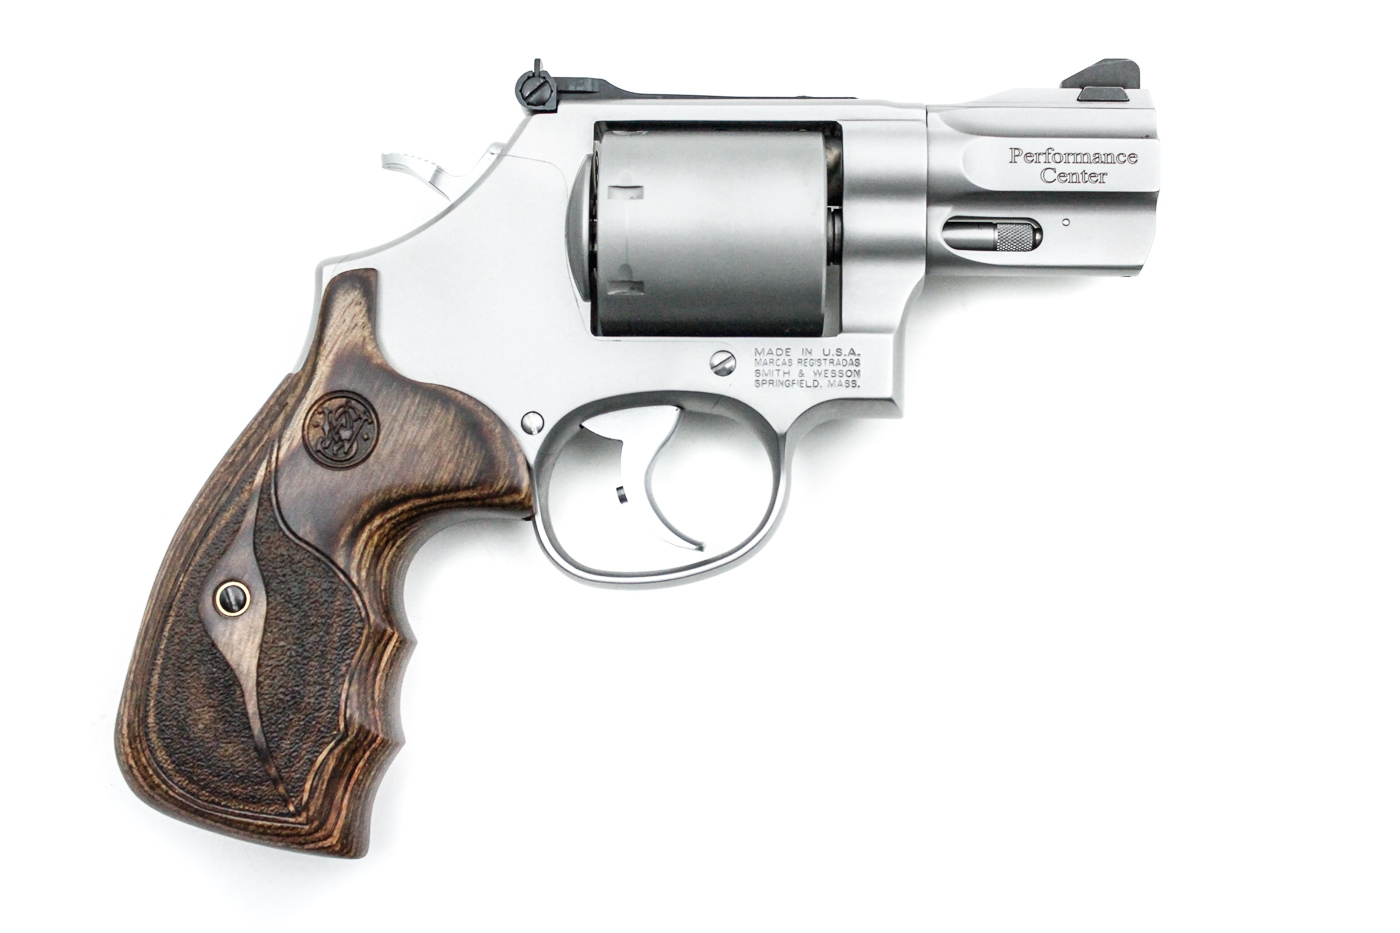 Smith & Wesson 686 Performance Center 7-Shot, .357 Magnum - Image 2